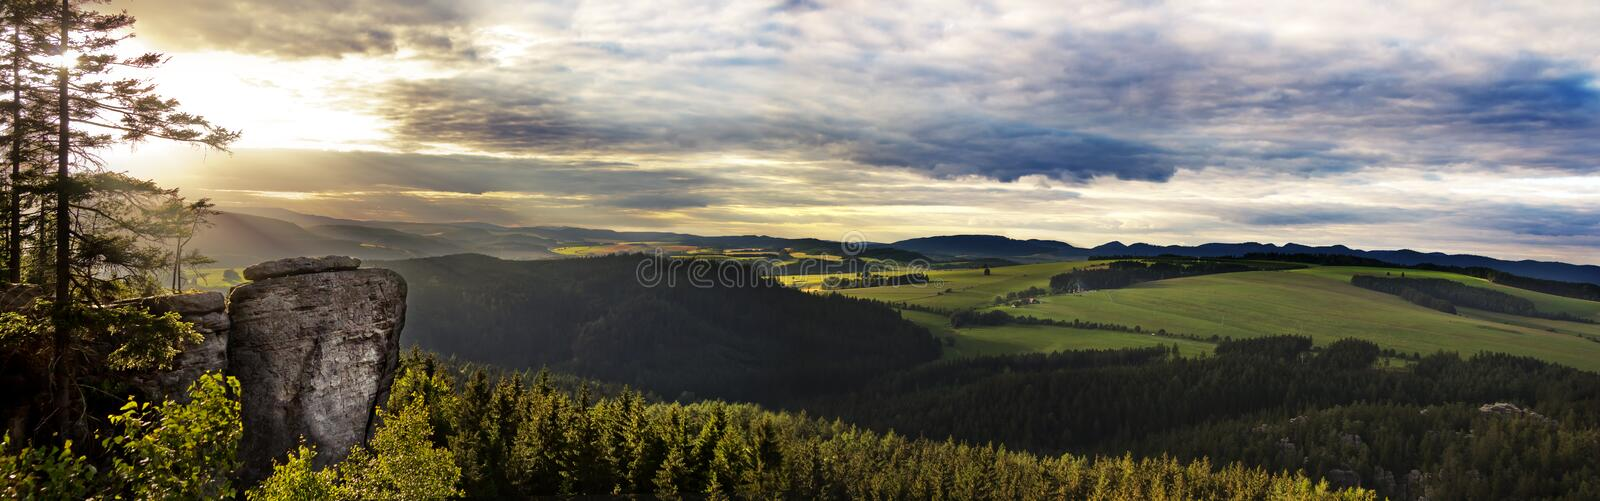 Colorful summer landscape with rocks of sandstone, Bohemia royalty free stock image